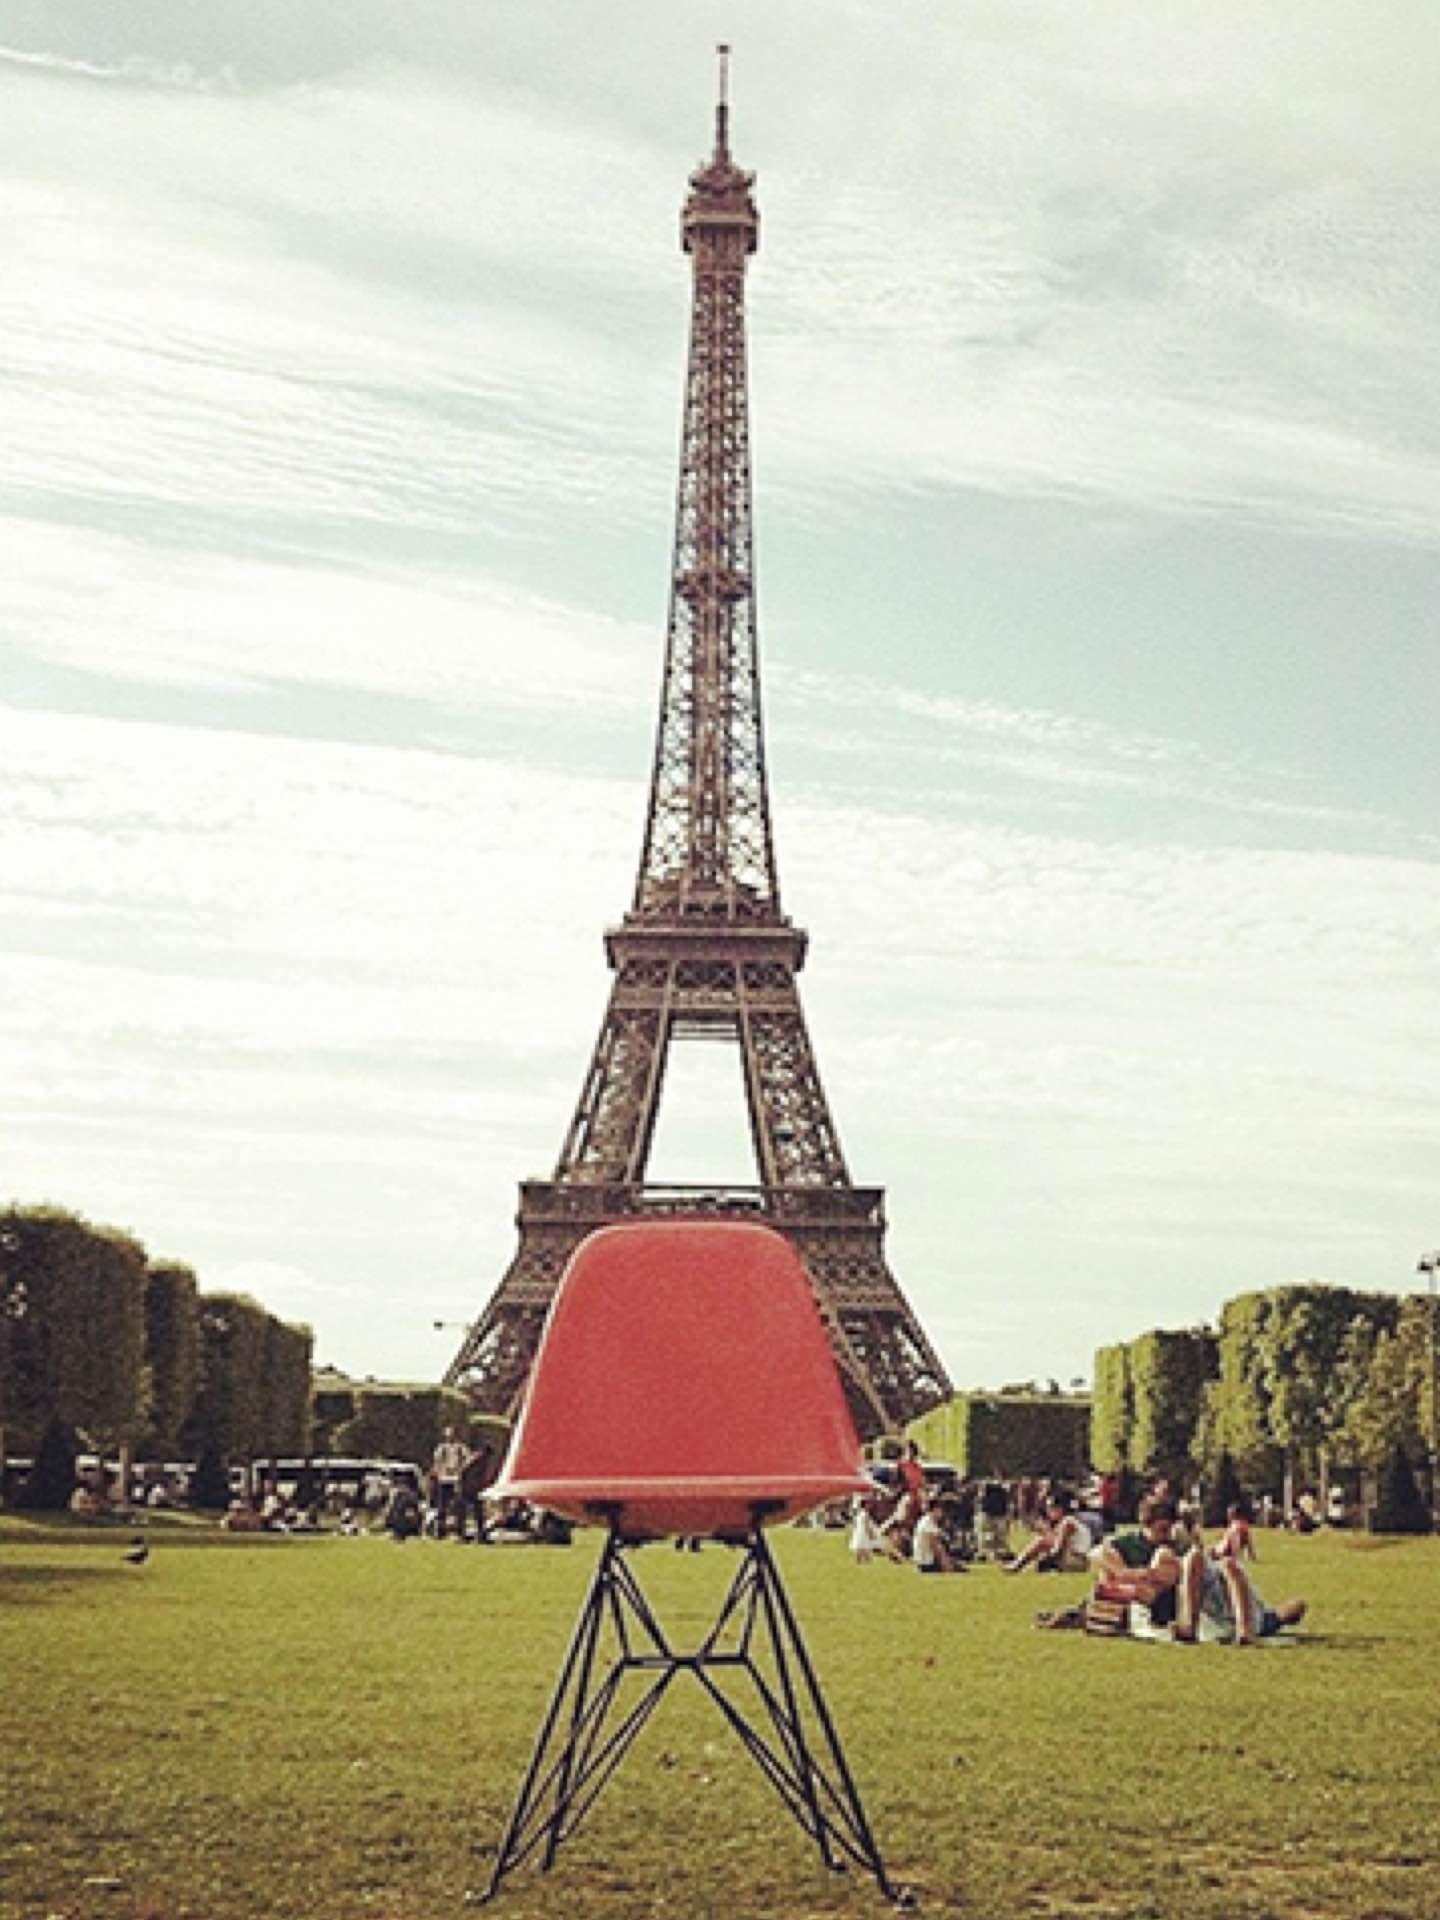 Today's #shellspotting #regram comes from #Eamessuper fans @vanityvintage, a graphic design duo living in Antwerp, Belgium. We were curious about anybody who'd take their vintage Shell Chair with them on vacation to Paris, so #WHYHM asked them to tell us a little more about their collection. Here's what they had to say: